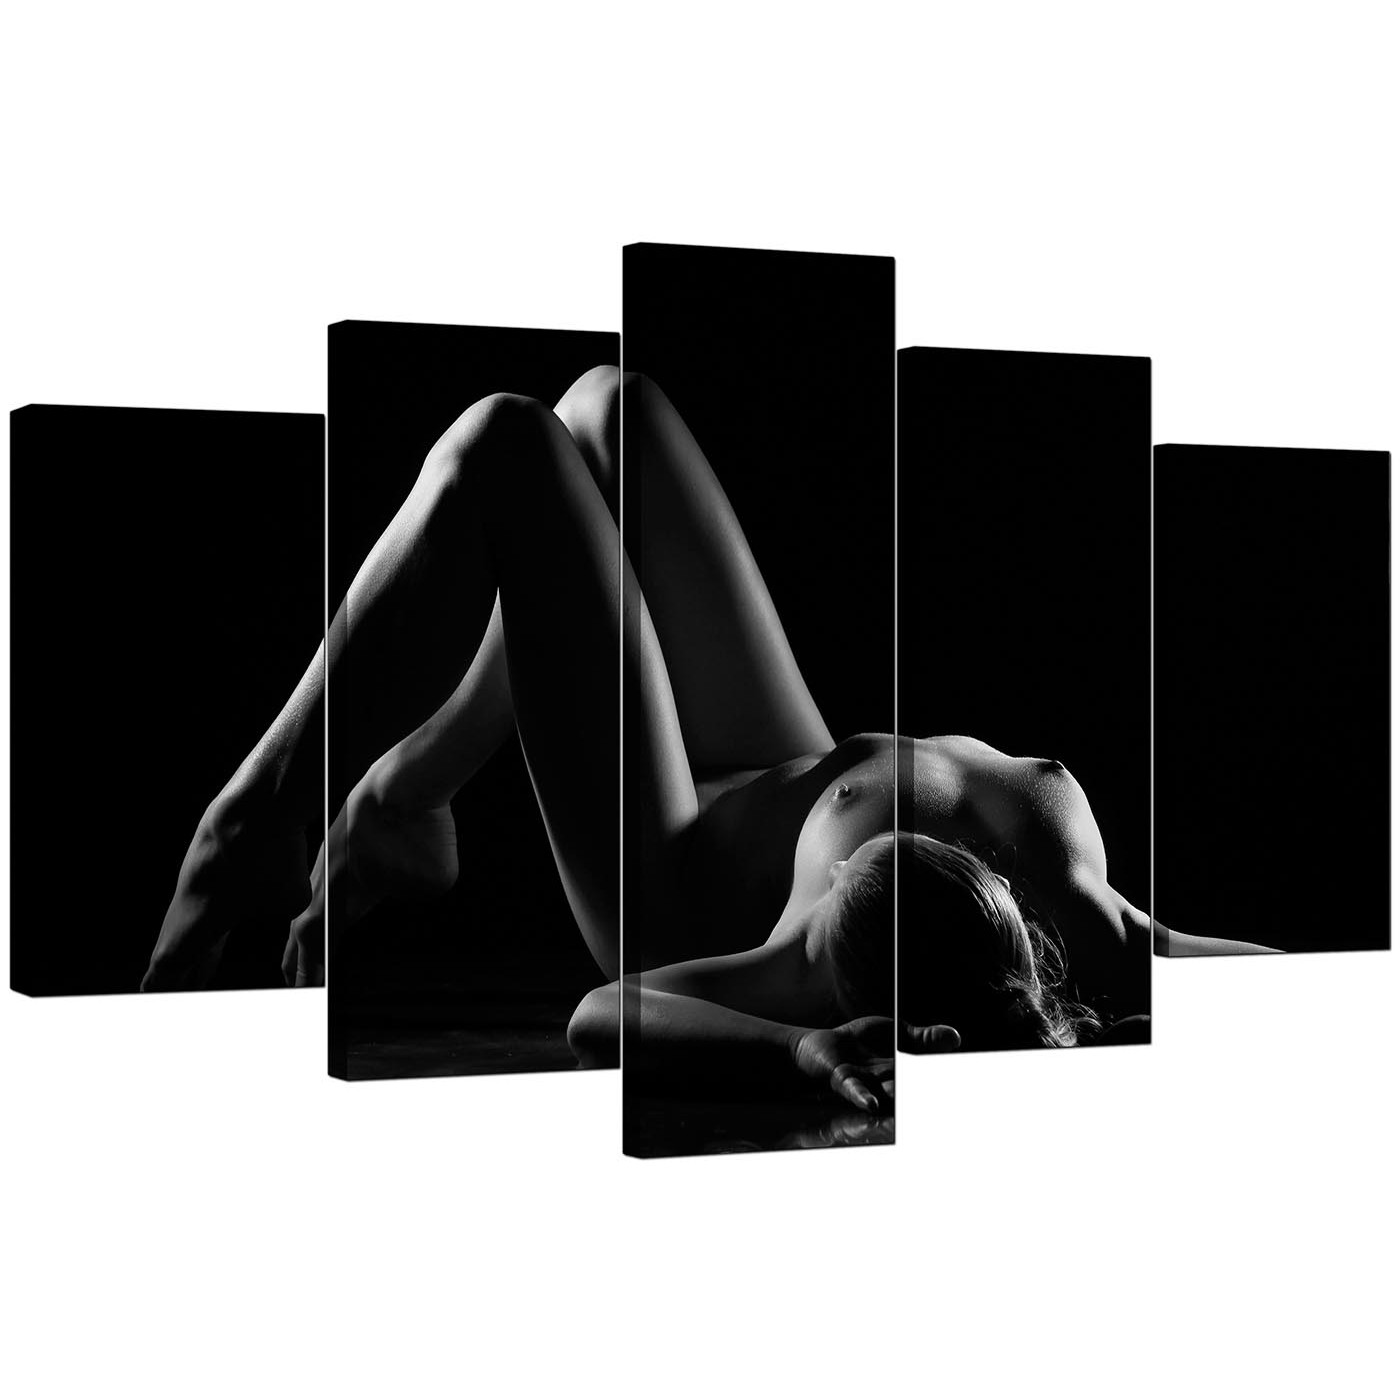 Female erotic nude pictures art